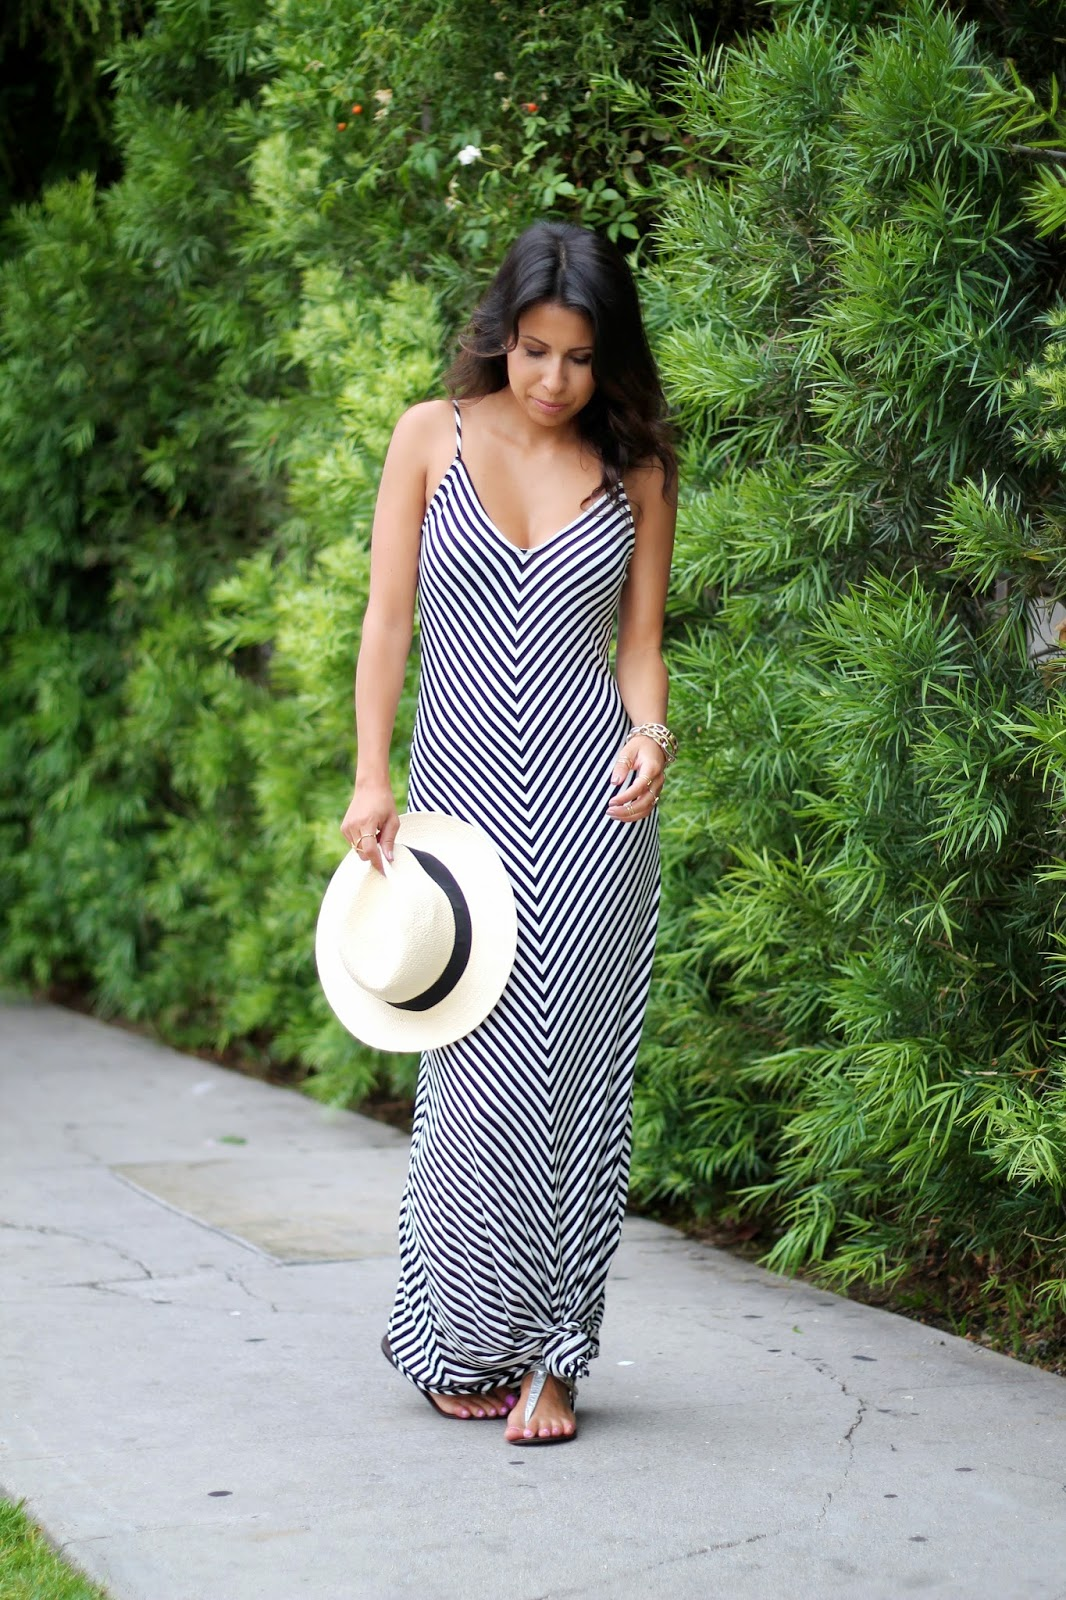 target maxi dress, striped maxi dress, target summer outfit, how to wear a maxi dress